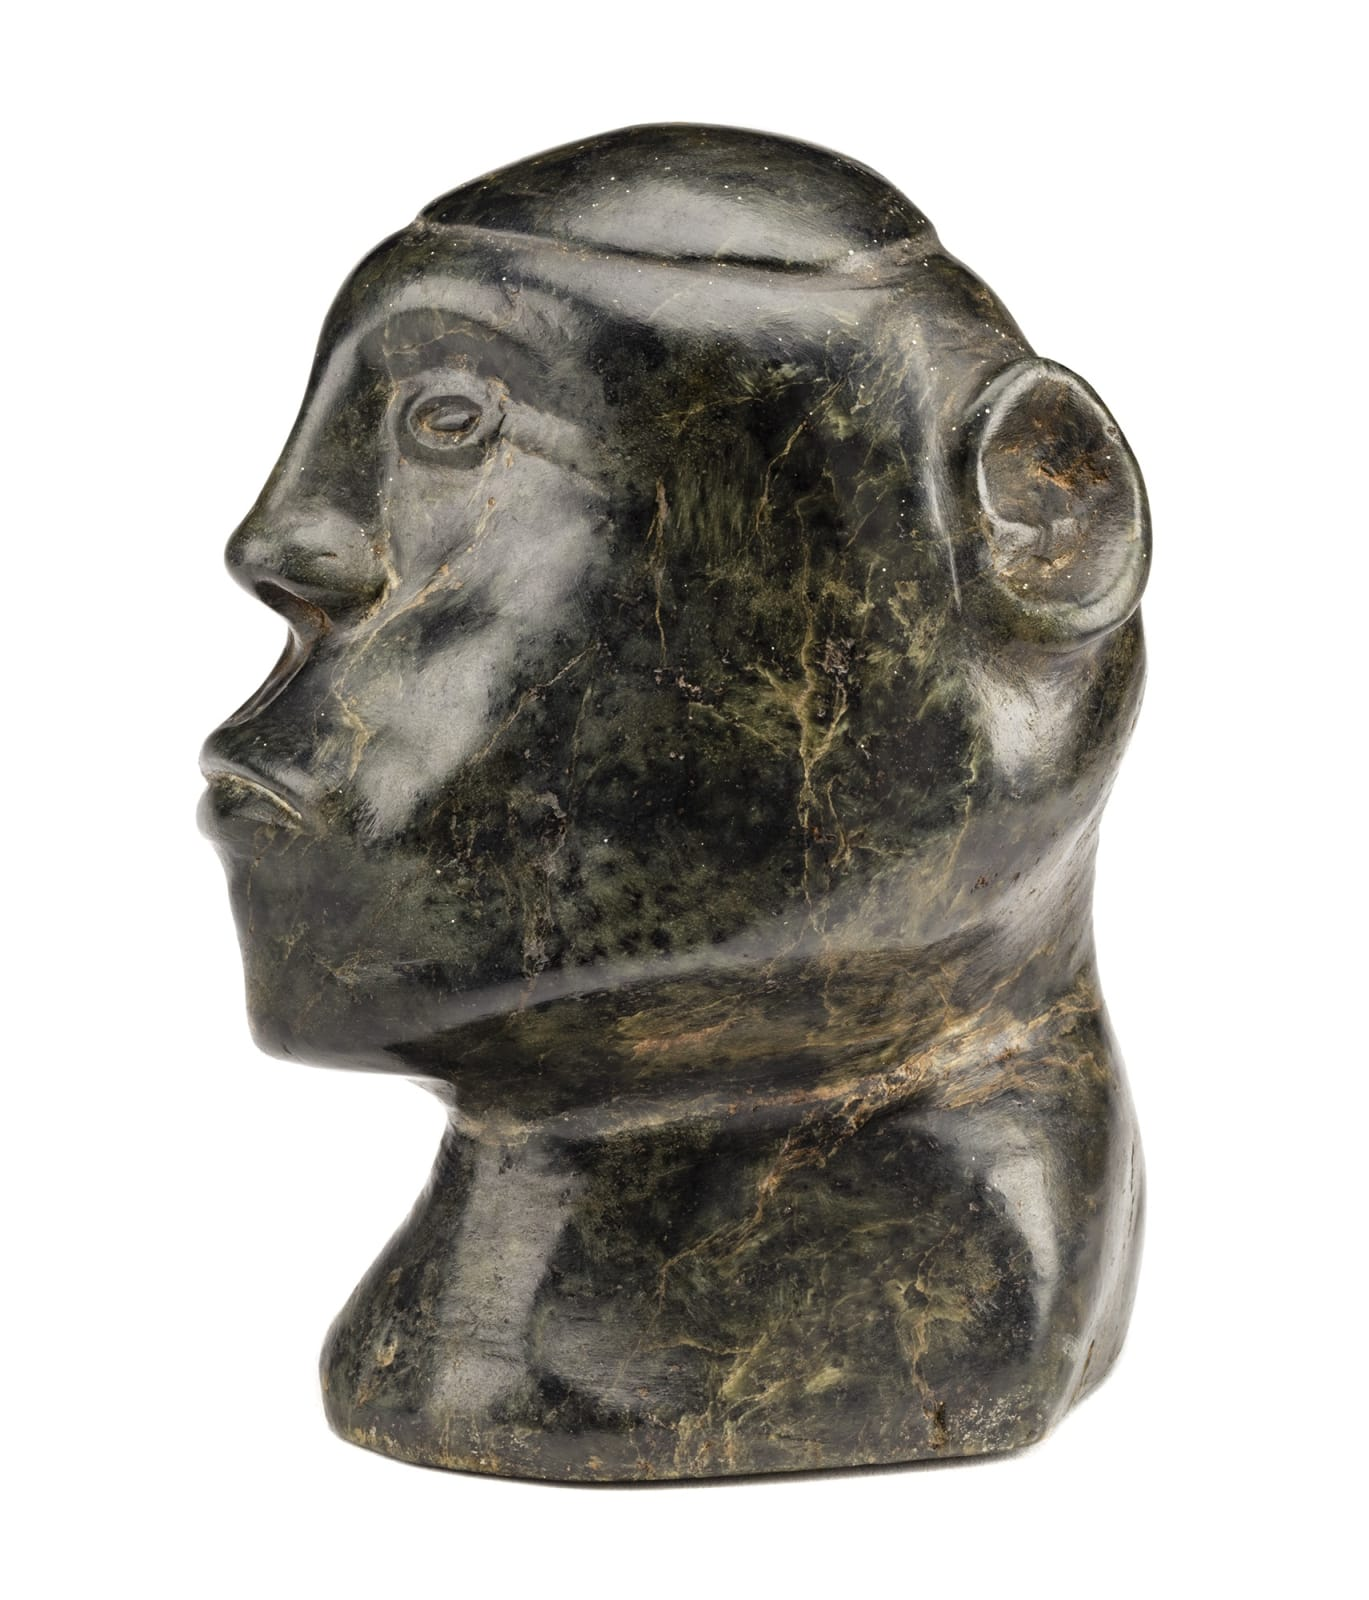 Lot 48 CHARLIE EPOO (1913-1985) INUKJUAK (PORT HARRISON) Head of a Man, late 1950s stone, 5.5 x 4.25 x 5.5 in (14 x 10.8 x 14 cm) Estimate: $2,500⁠ — $3,500